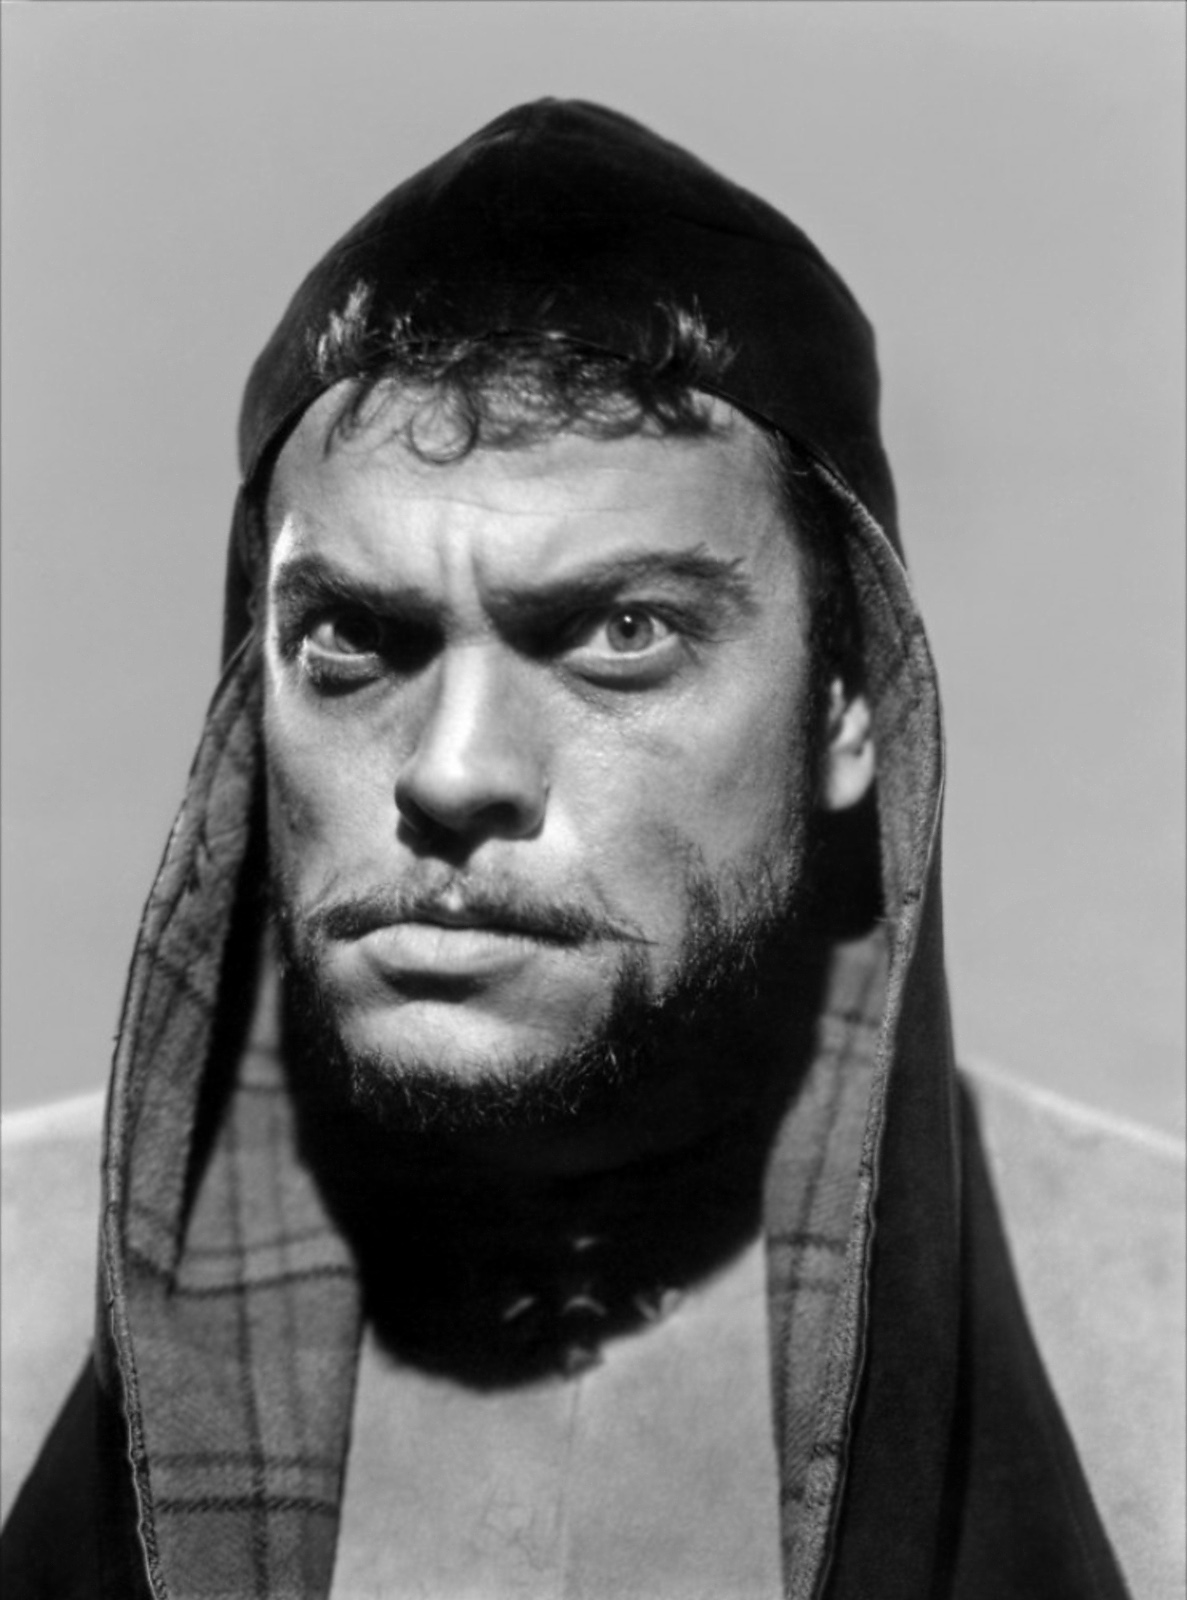 Annex%20-%20Welles,%20Orson%20(Macbeth)_07.jpg